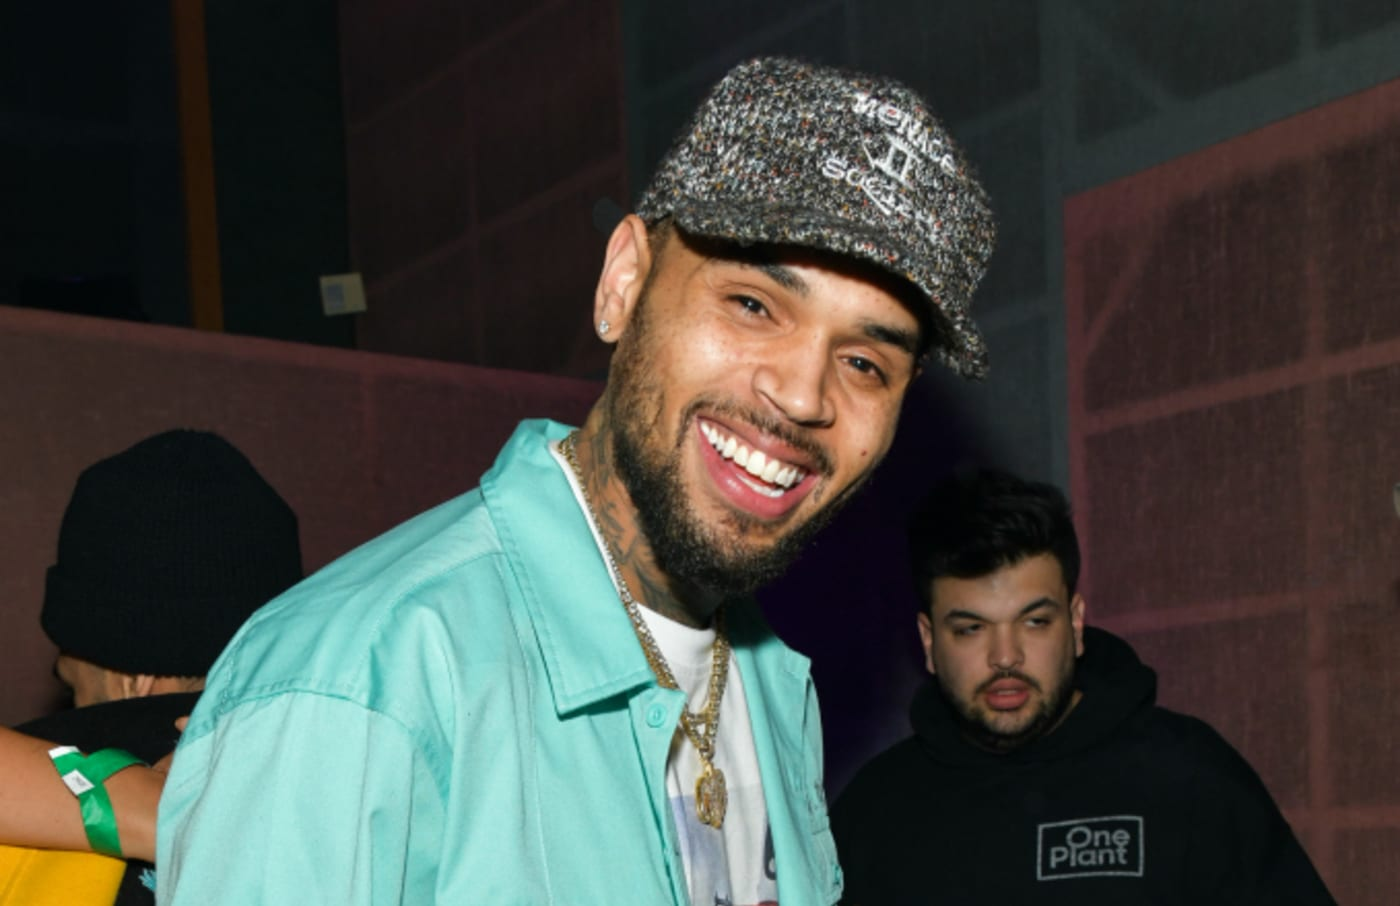 Chris Brown poses for portrait at his album listening event